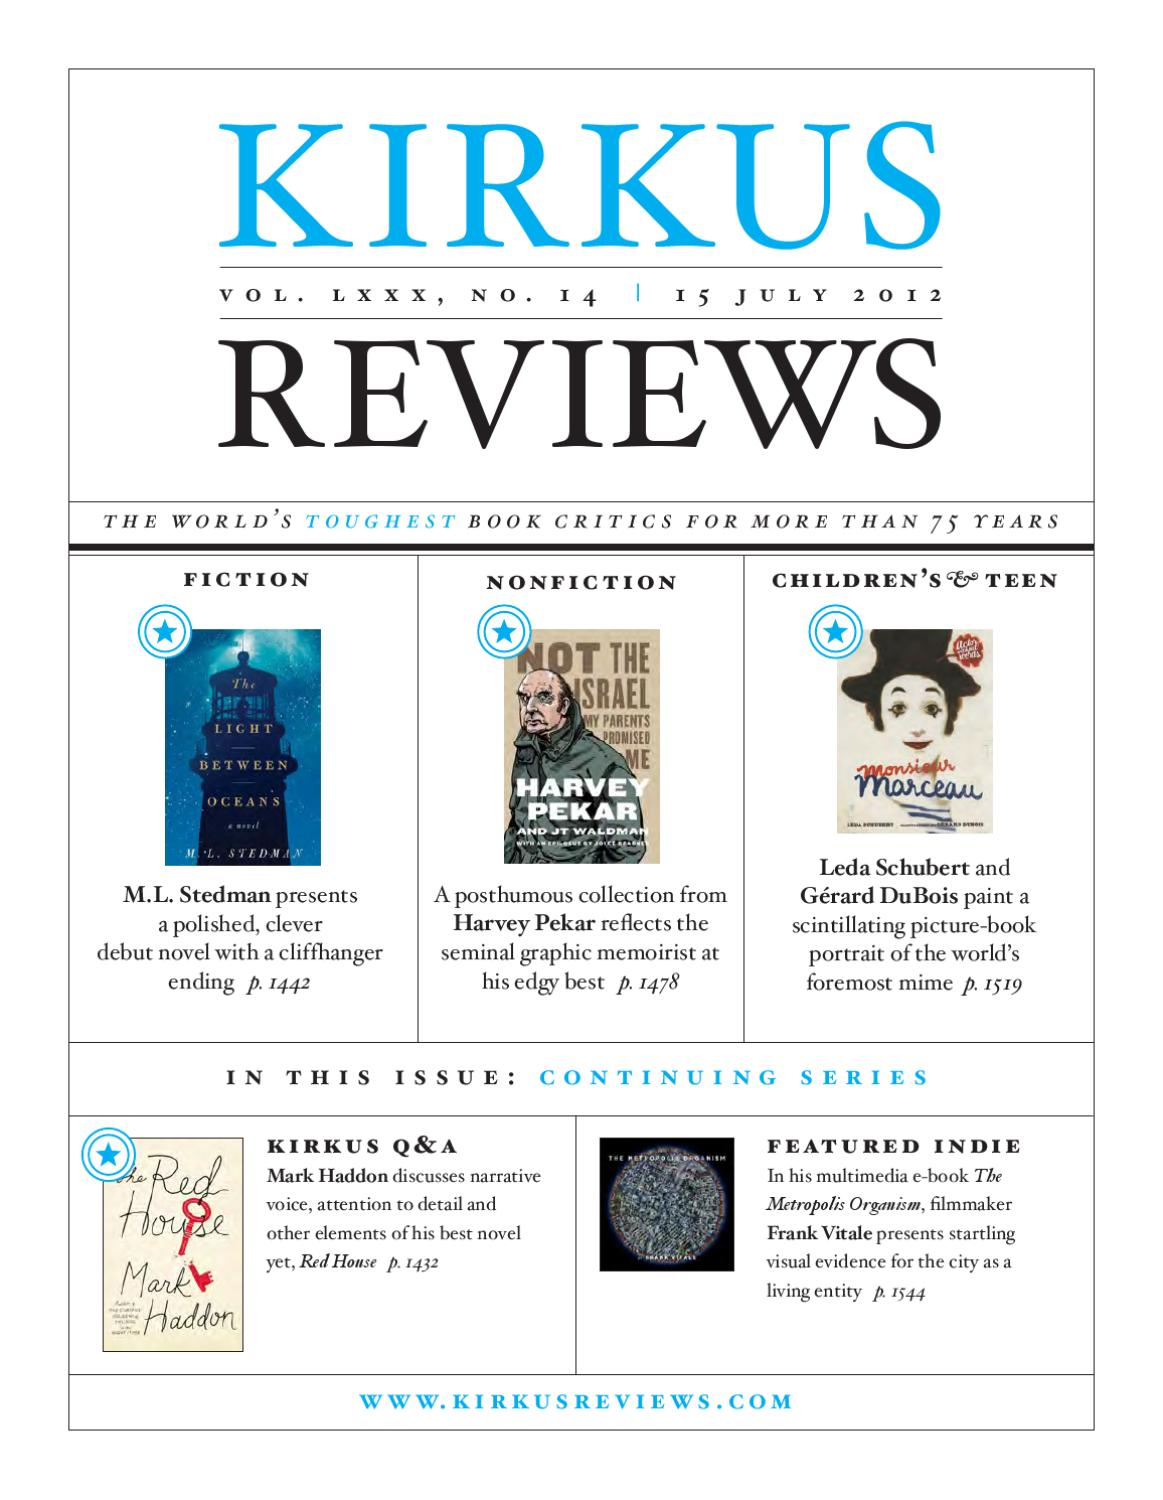 kirkus review Blurb: kirkus reviews is a long established name in the publishing industry when did the company begin accepting self-published titles karen schechner: kirkus' indie program started in 2005 when the editors wanted to expand their coverage to include the fastest growing segment in the book industry—self-publishing to meet scale, selection and financing challenges, kirkus created a review.